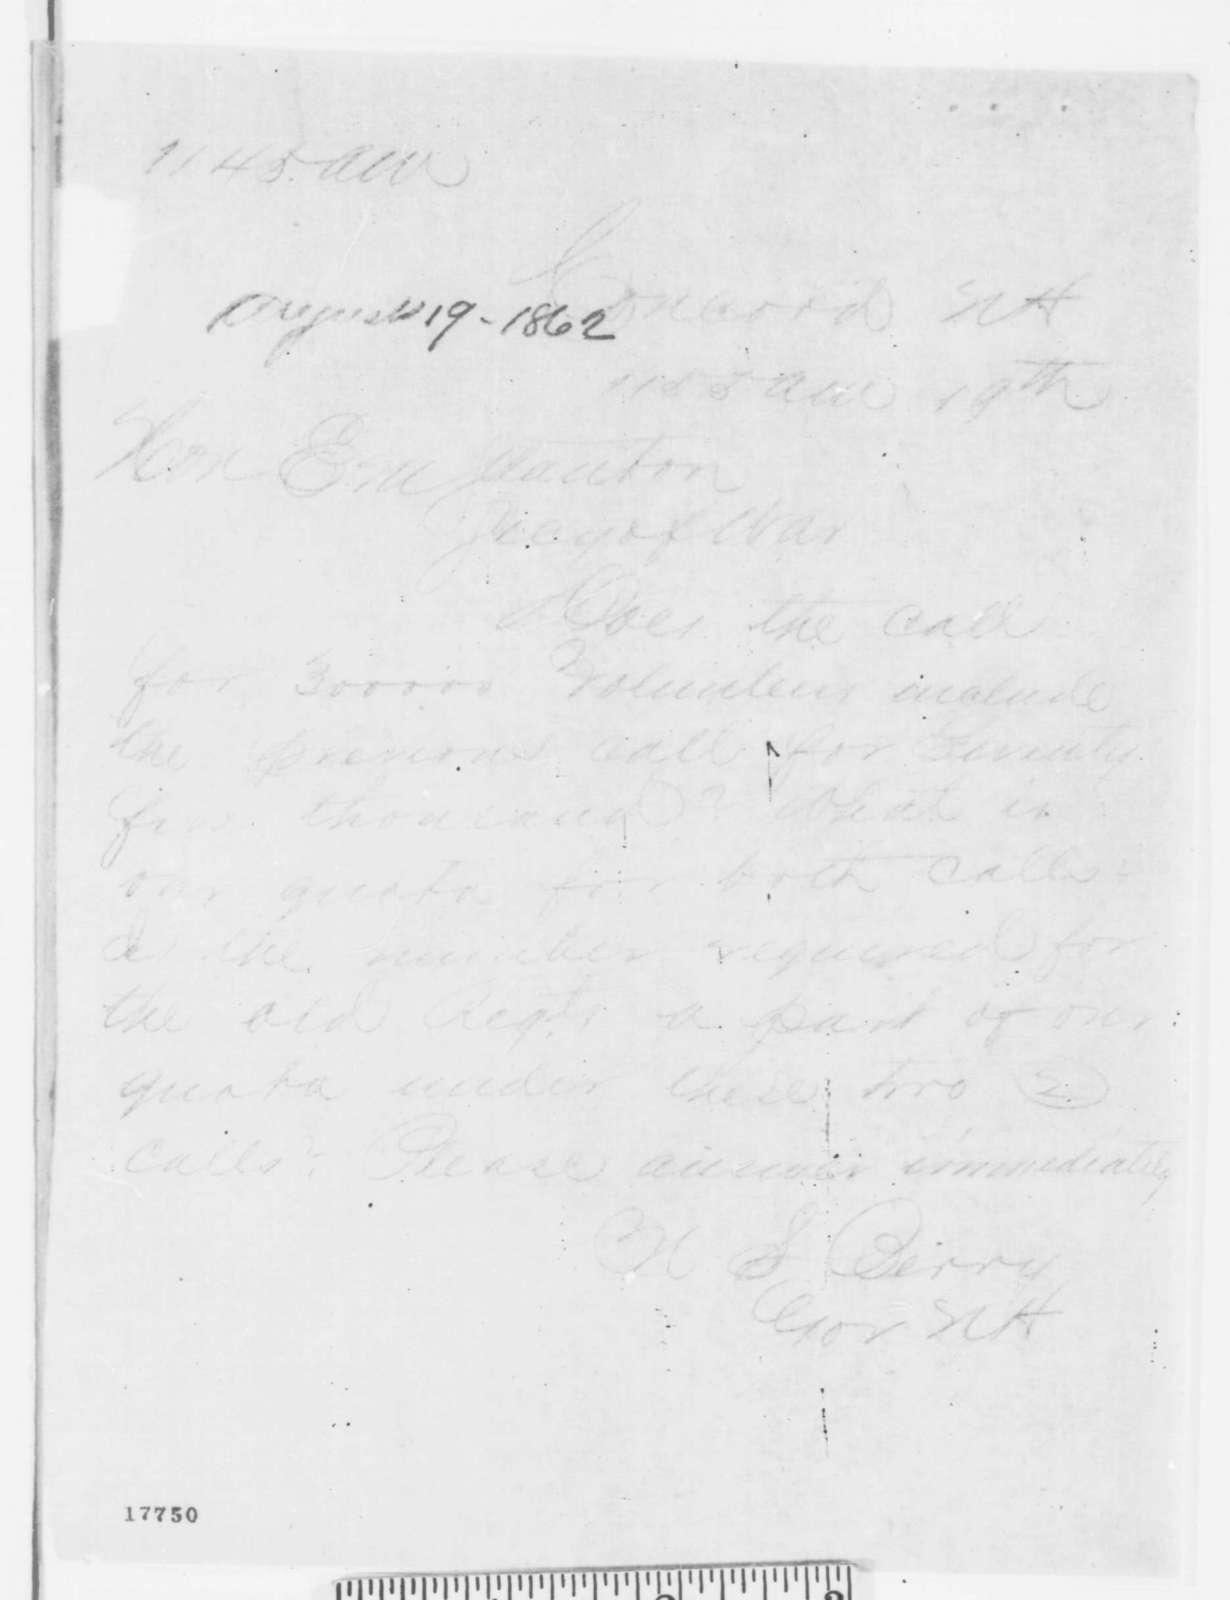 Nathaniel S. Berry to Edwin M. Stanton, Tuesday, August 19, 1862  (Telegram concerning military preparations)